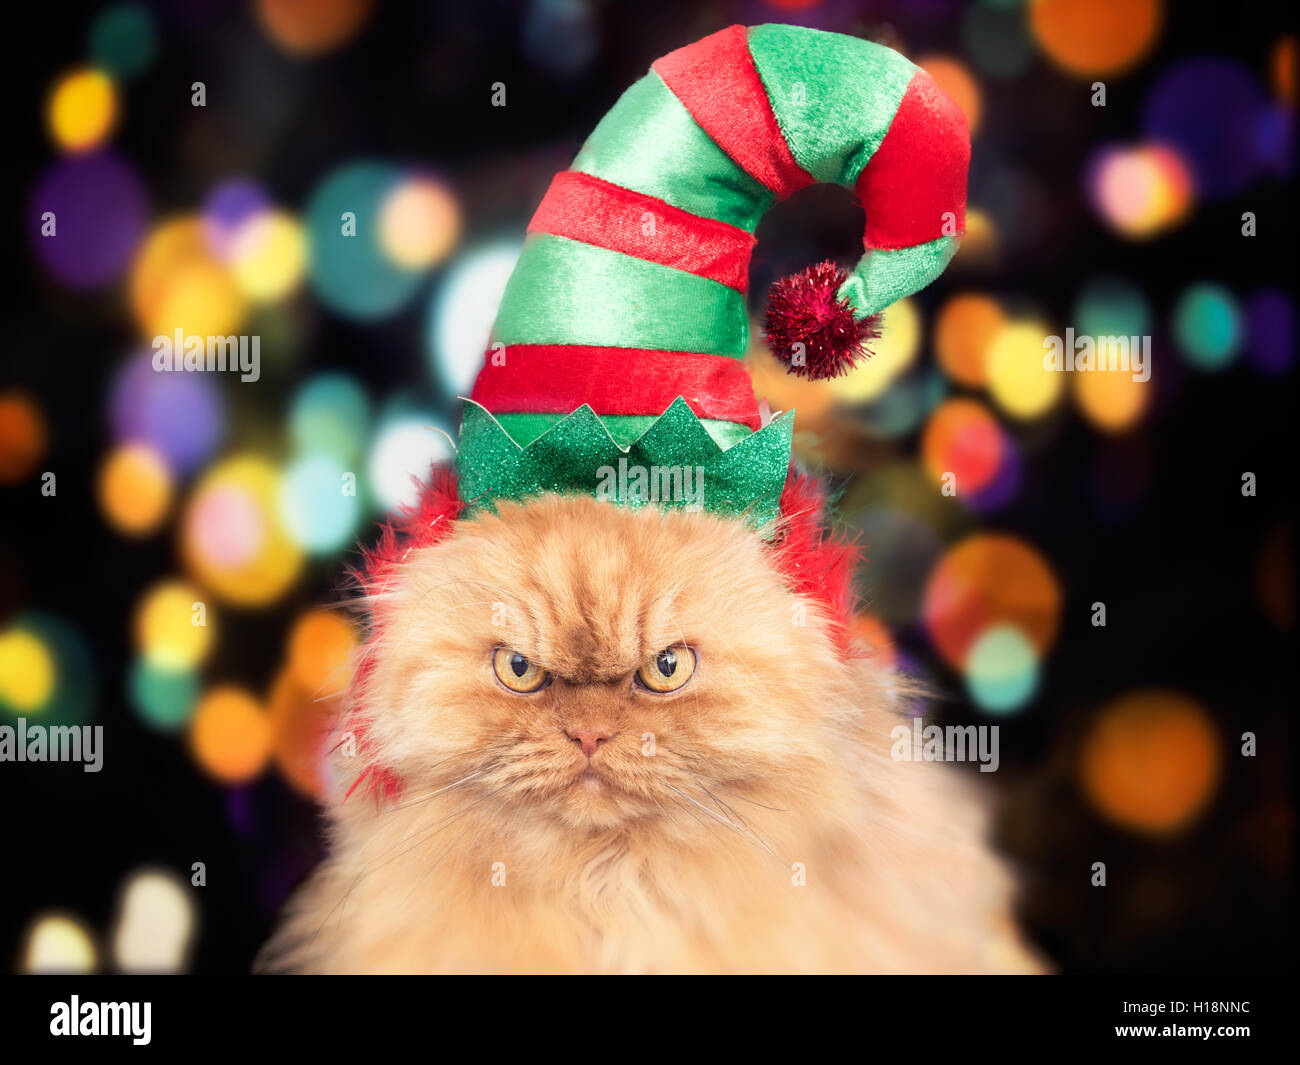 Persian cat wearing holiday elf hat - Stock Image